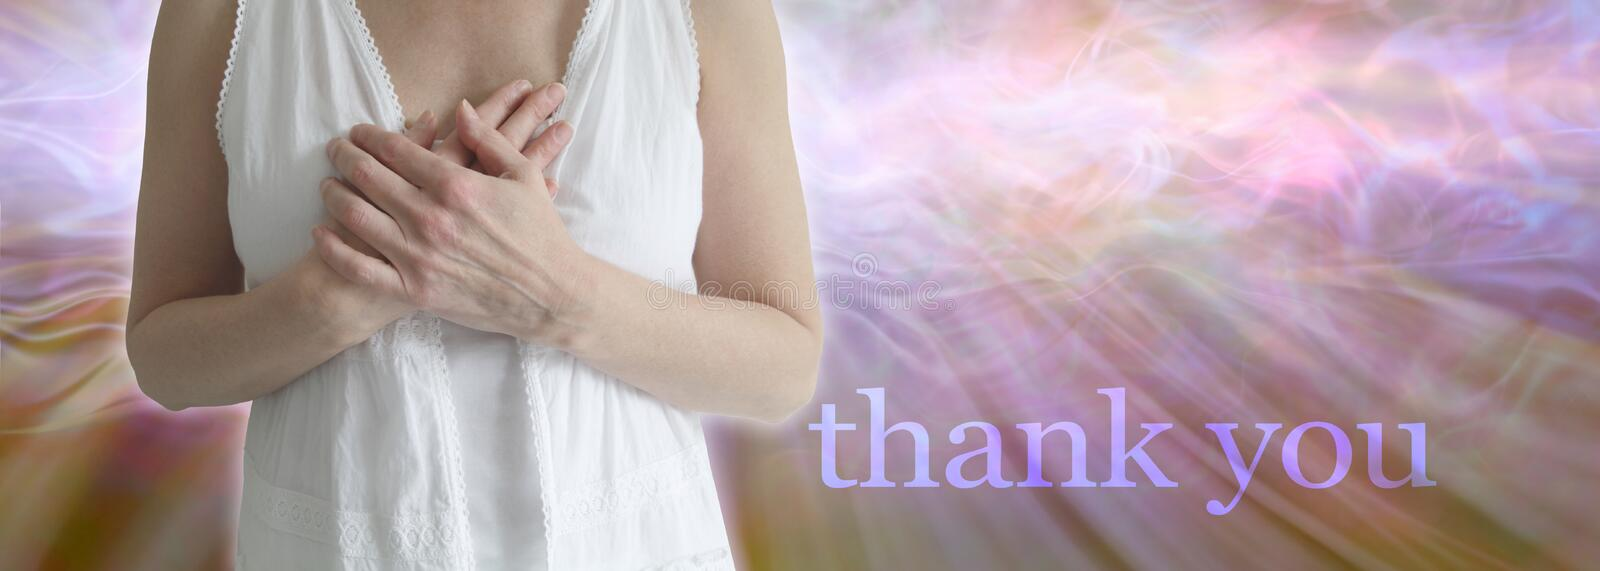 Thank you with all my heart royalty free stock images